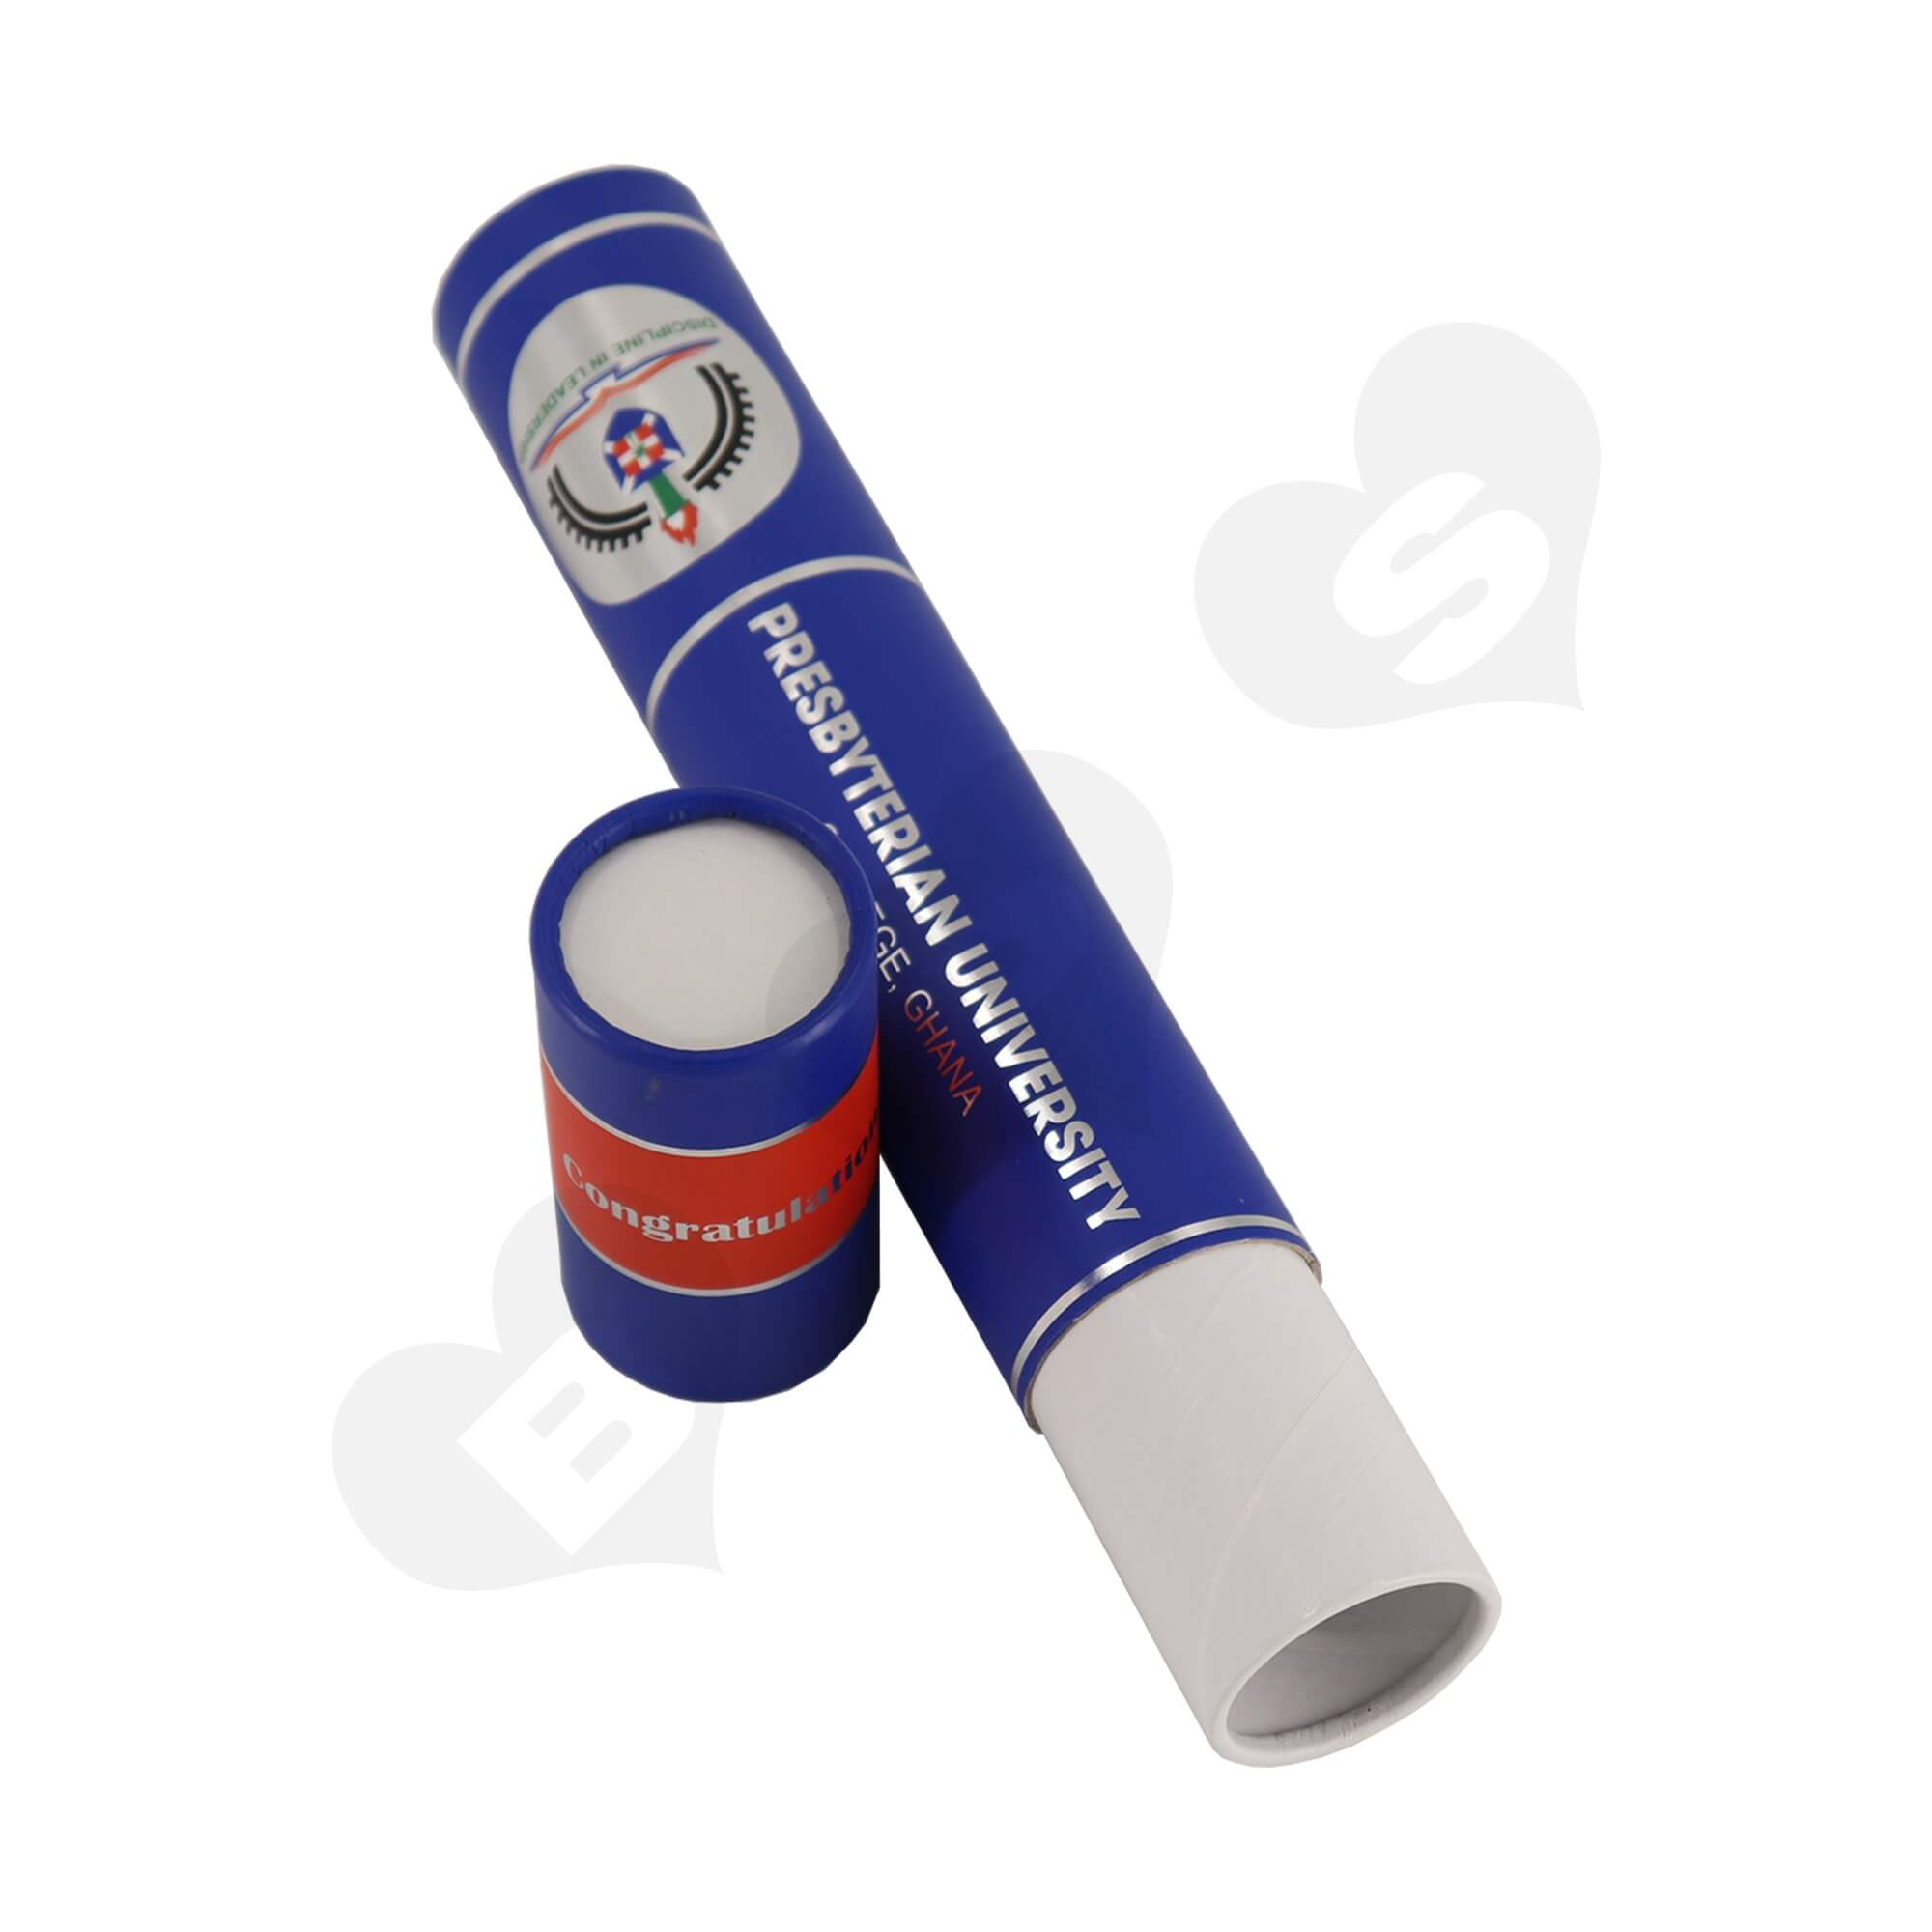 Big Size Cardboard Tube For Packing University Congratulations Gifts Side View Five